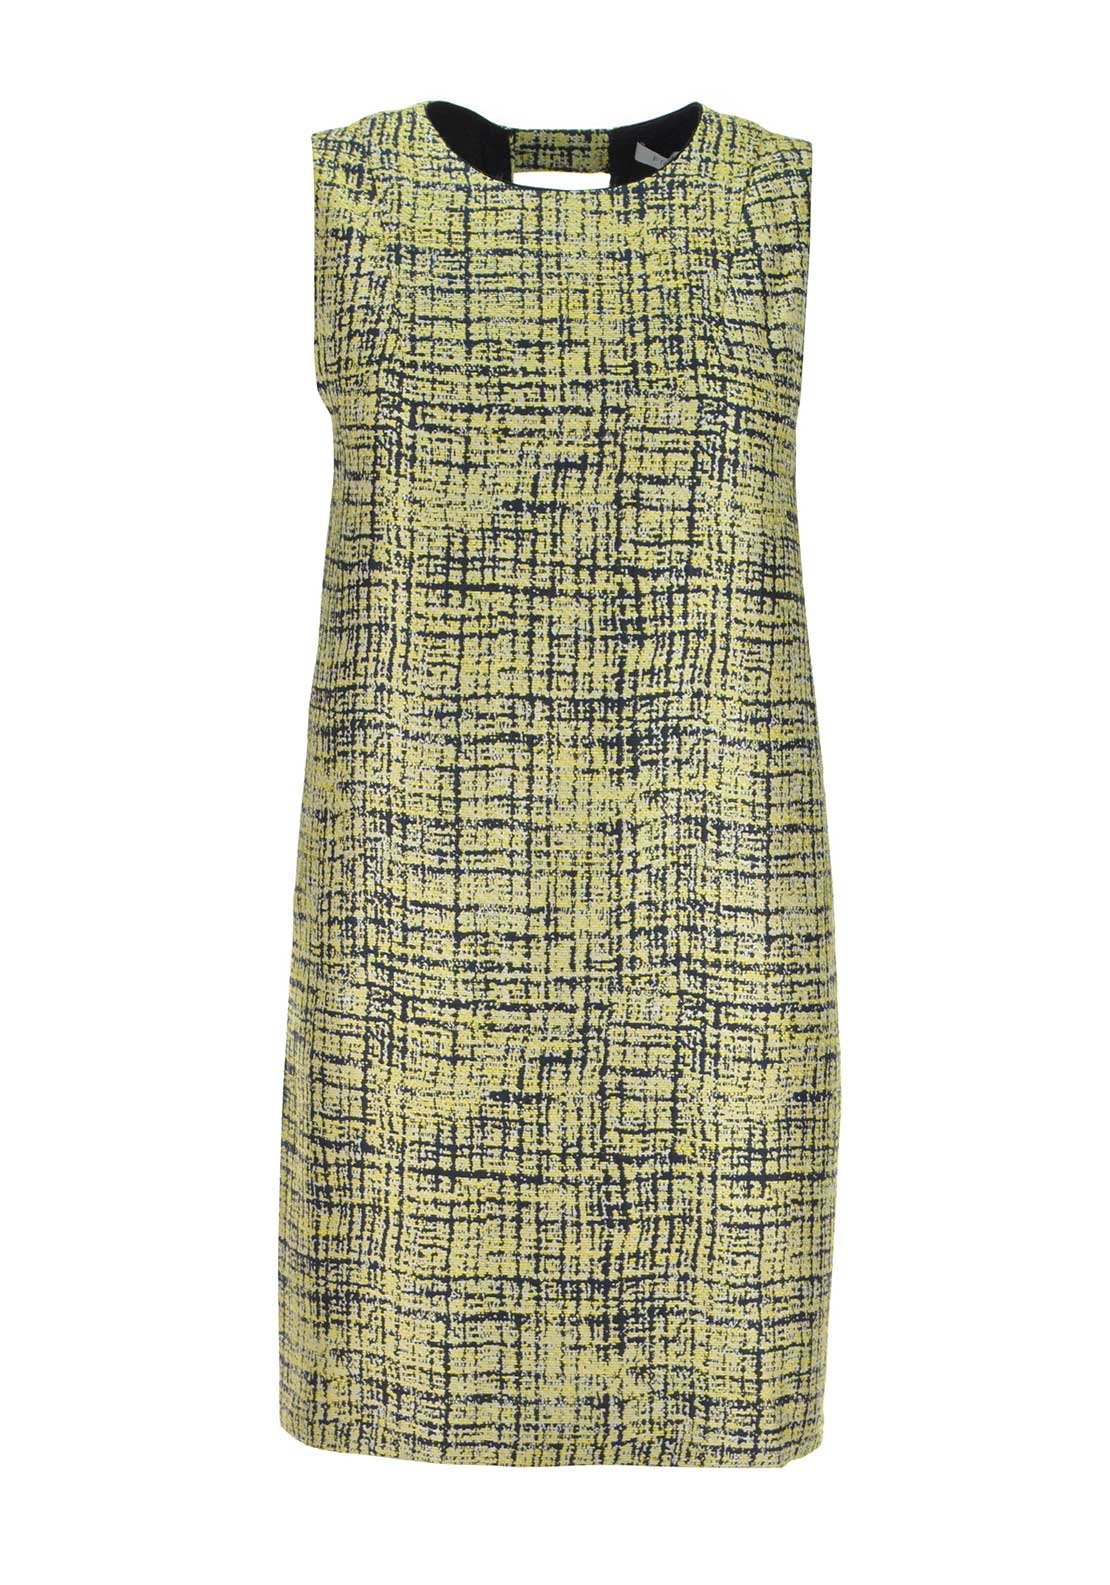 FRNCH Embossed Grid Print Shift Dress, Yellow